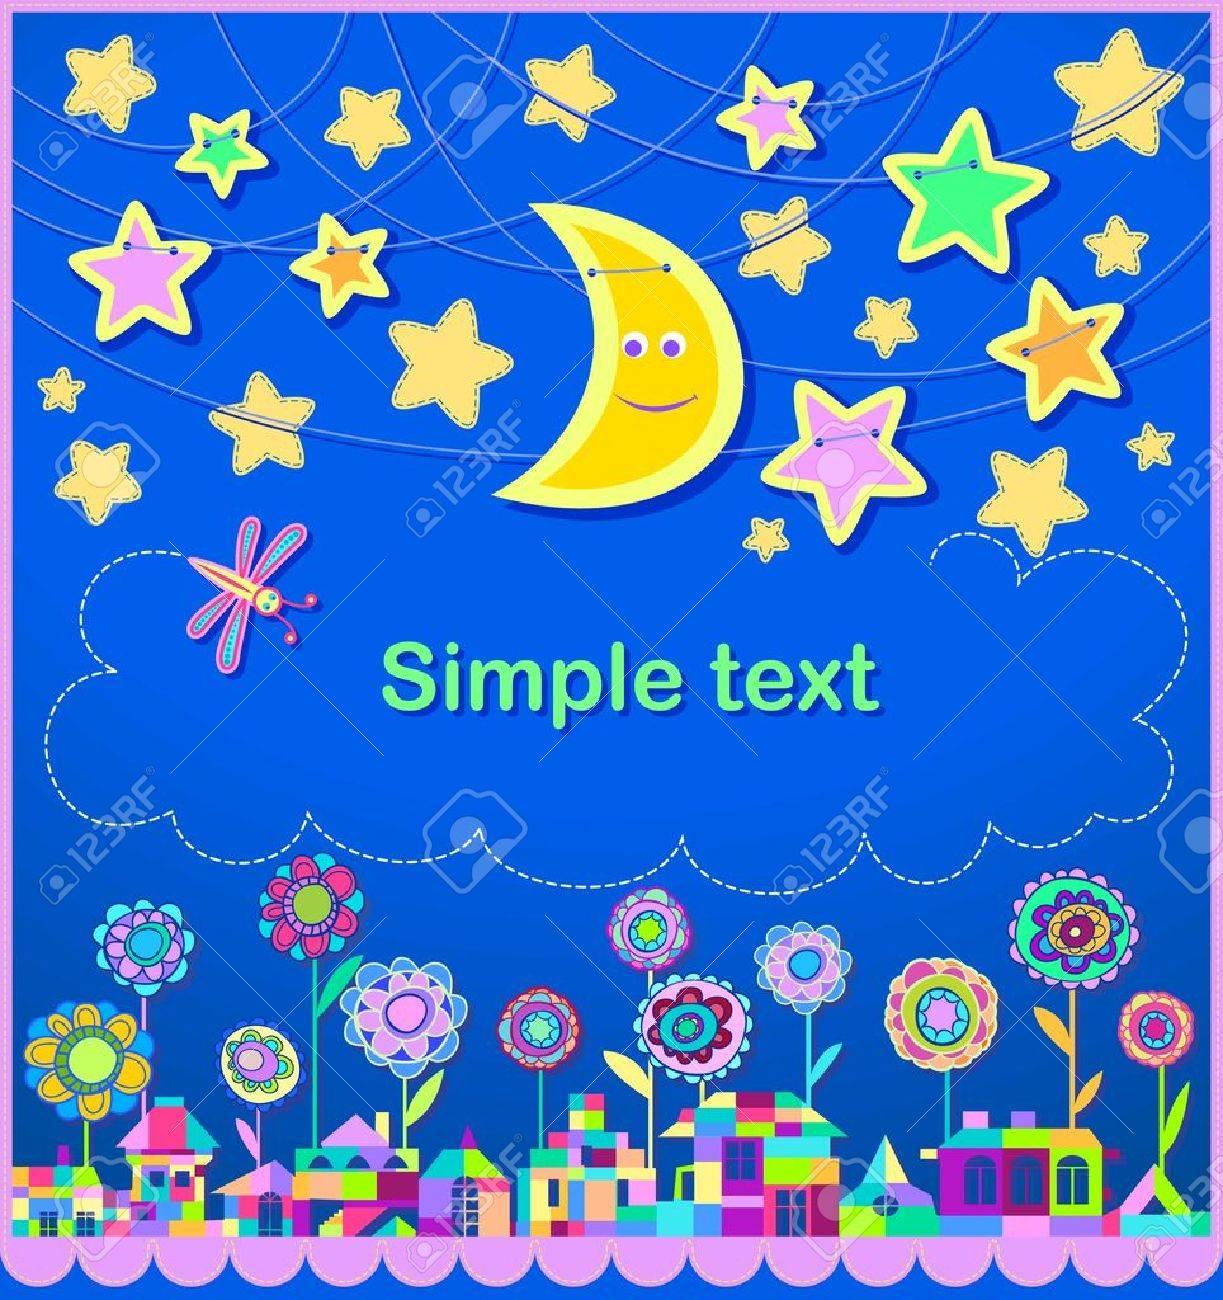 Children s holiday card  Stars in the night sky  The city is composed of bright geometric shapes Stock Vector - 16799583